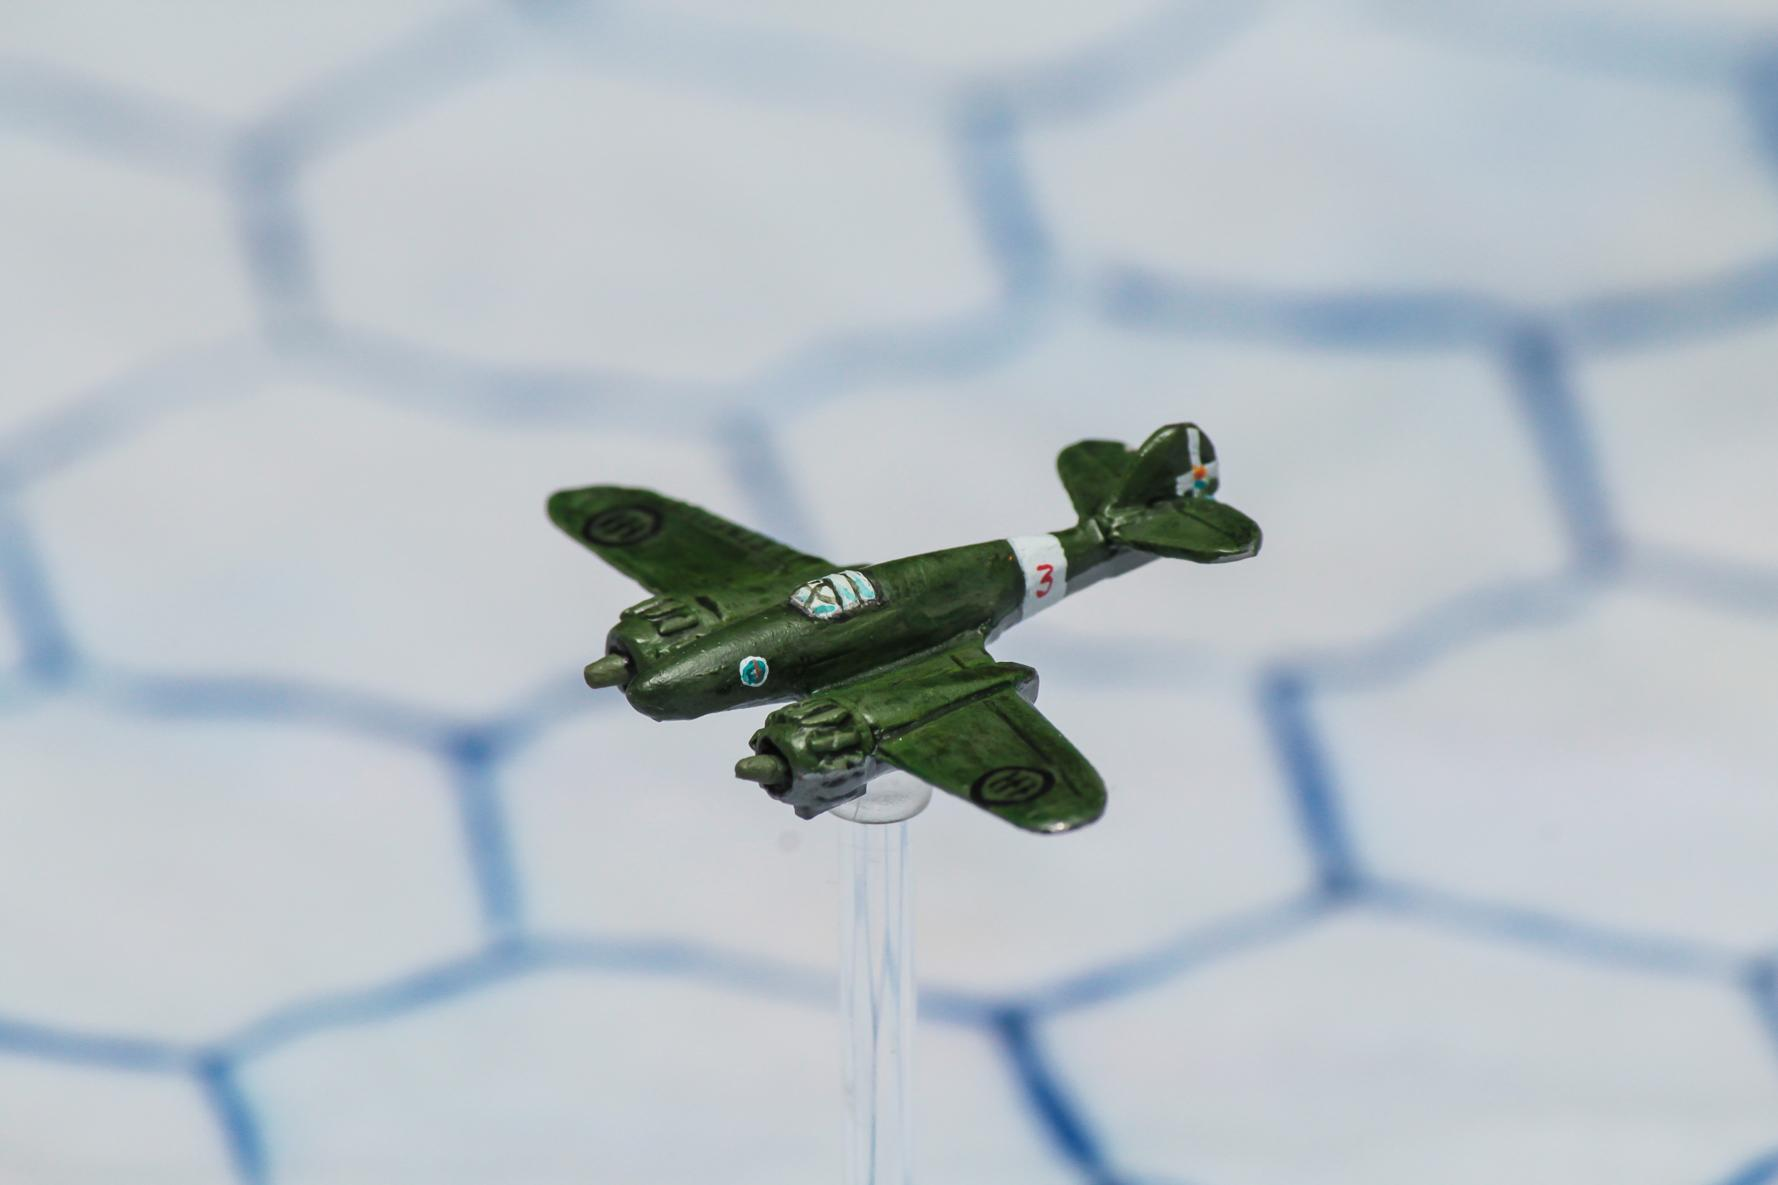 1:300 Scale, 6mm Scale, Air Combat, Check Your 6!, Finland, Fliers, French, Germans, Imperial Japan, Italian, Italy, Luftwaffe, Raf, Regia Aeronautica, Republic Of China, Soviet, Usaaf, World War 2